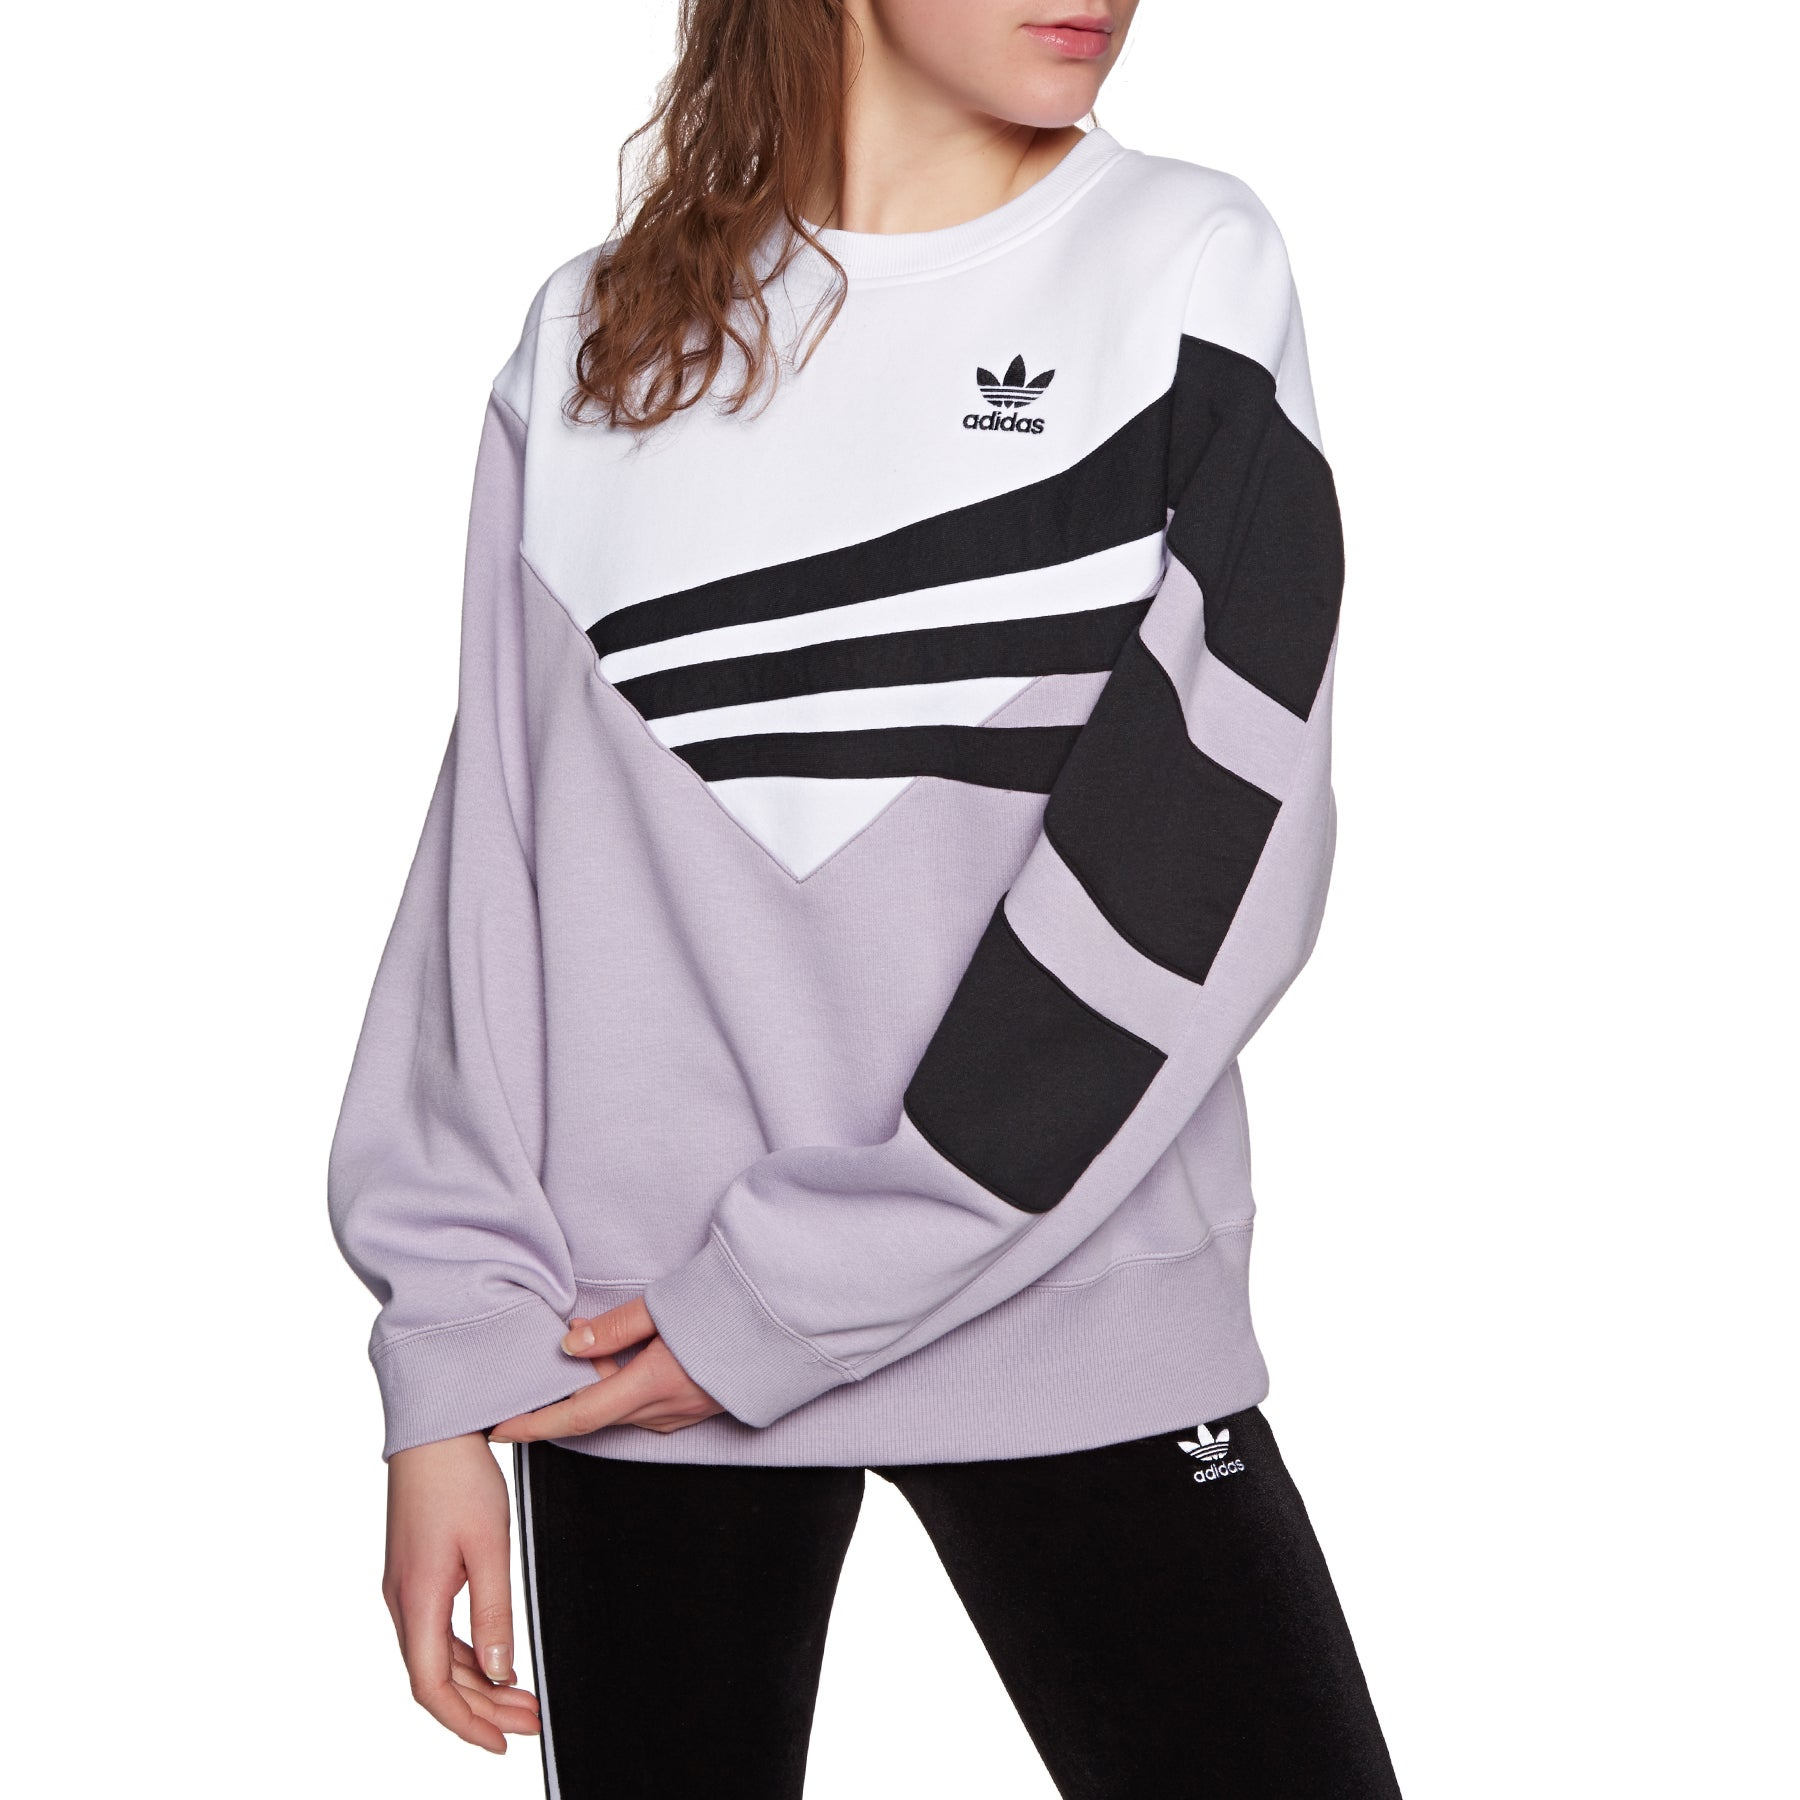 Adidas Originals Adi Sweater - Soft Vision White Black